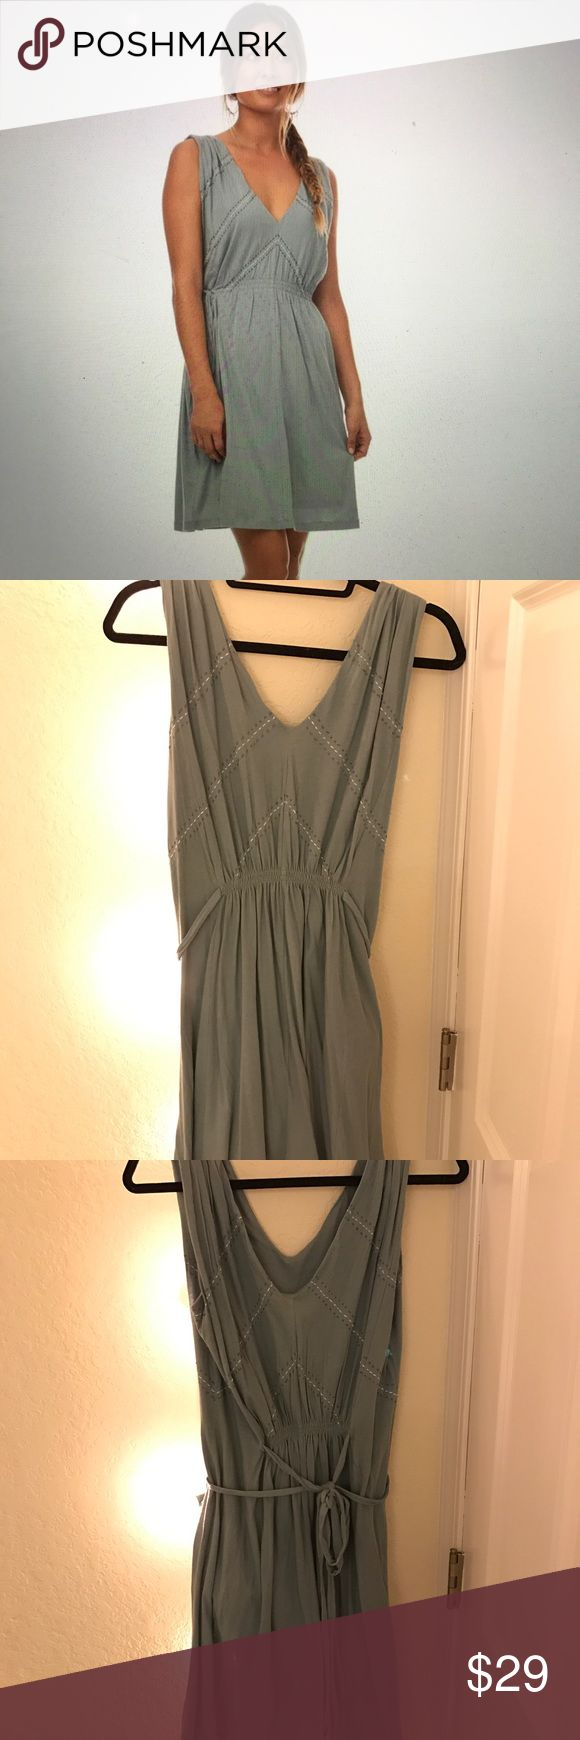 """Synergy blue chevron dress """"Chevron stitch Julia dress"""" SIZE XS worn once in a wedding. Ethical clothing company environmentally friendly and a super soft dress! Like new with no stains or rips. Has adjustable drawstring at the waist that ties on the sides or in the back. Synergy Organic Clothing Dresses"""